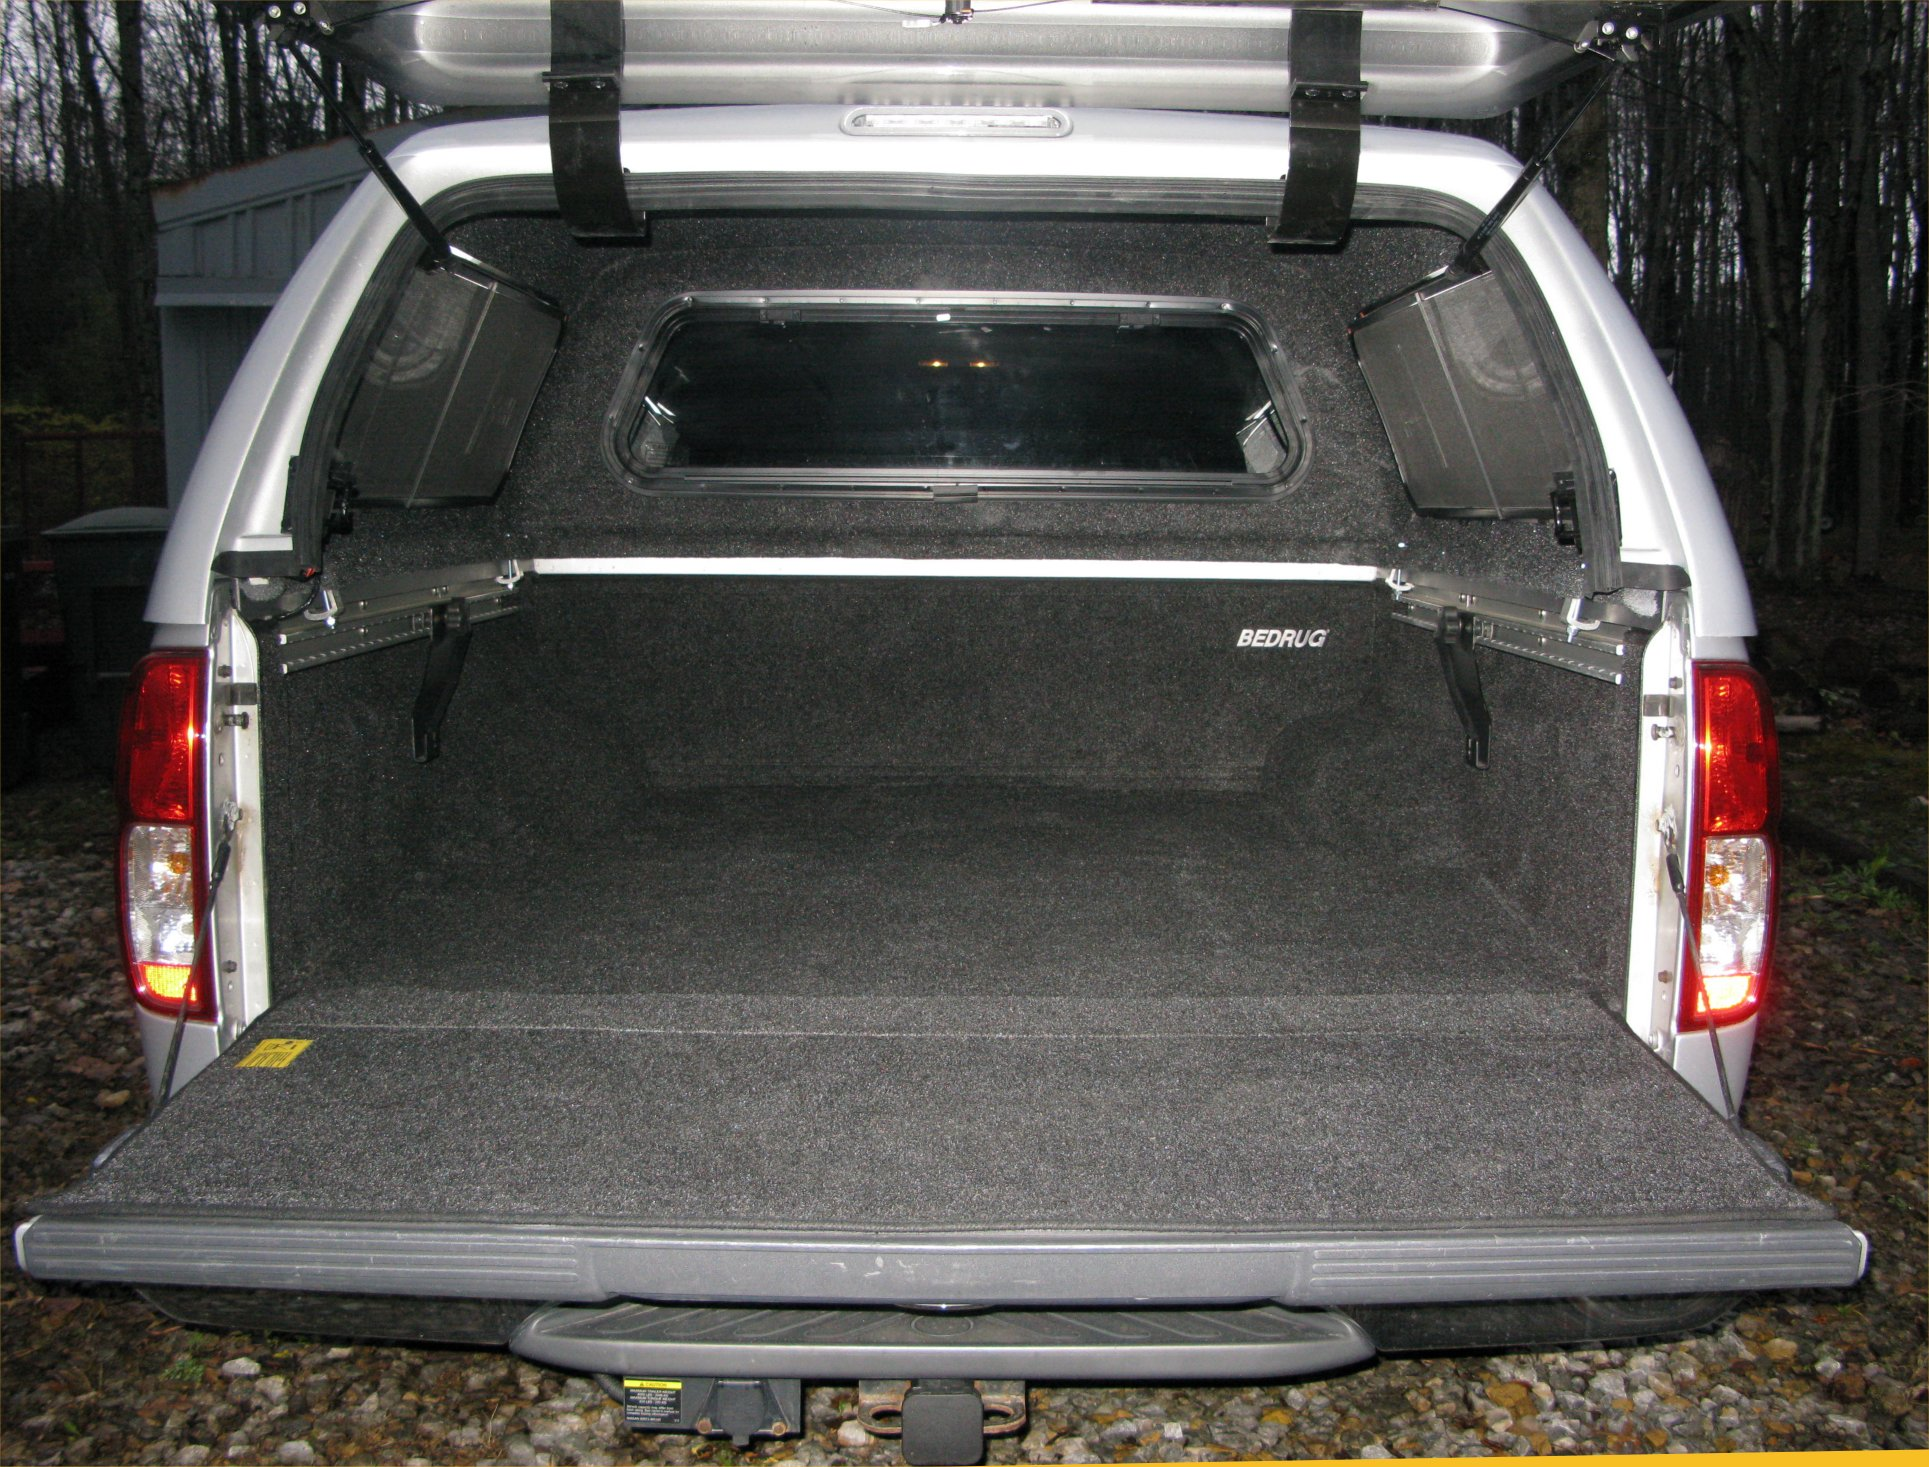 mpn gray mat liner rear cargo kit bed jeep bedrug replacement rug